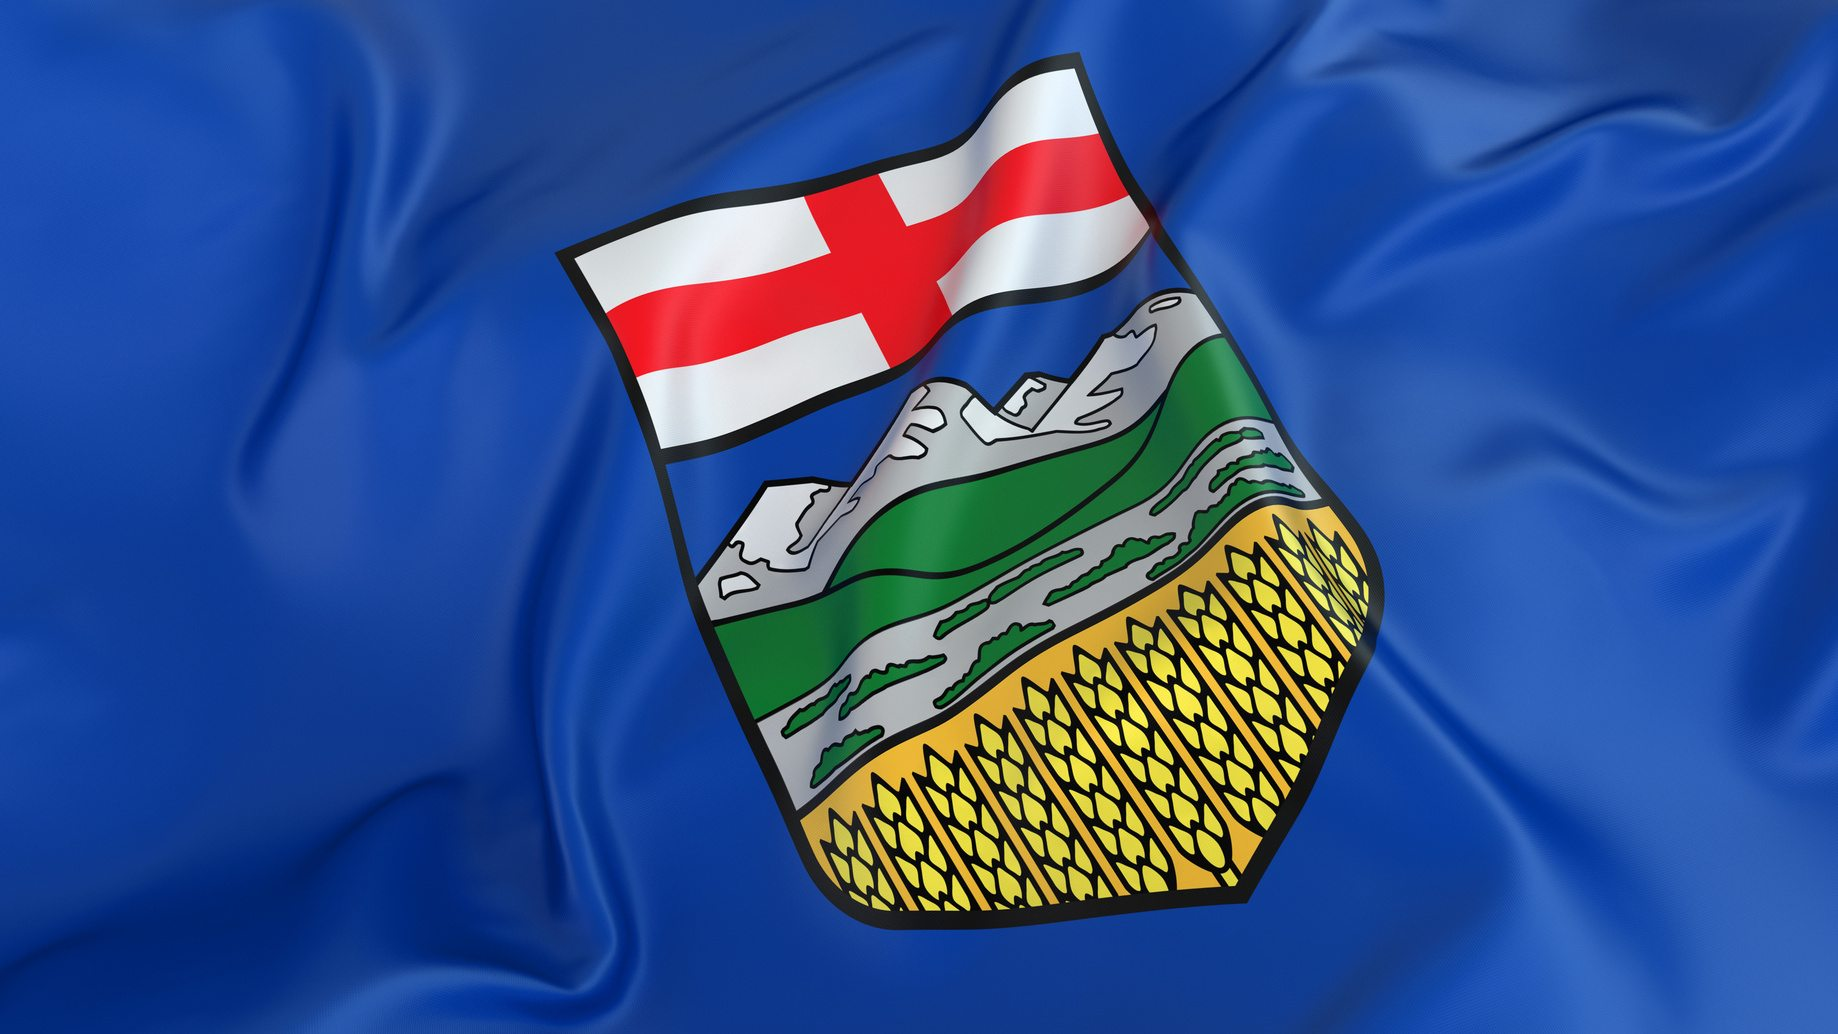 Happy Alberta 114th Celebration!